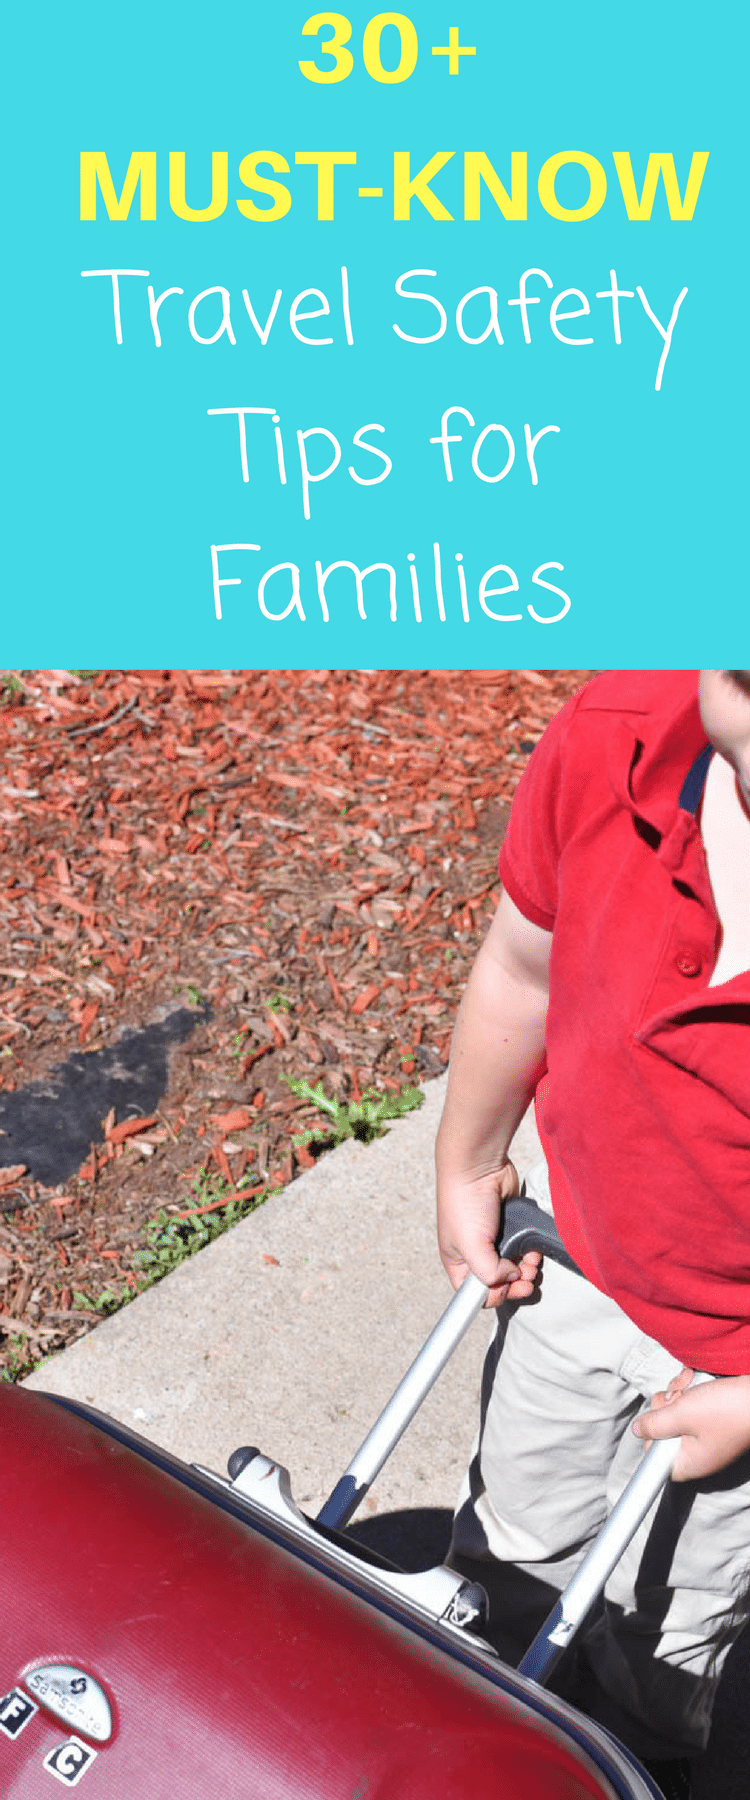 30+ Must-Know Travel Safety Tips for Families / Travel Tips for Families / Family Travel Tips / Travel Tips / Safety / Children / Traveling with Children via @clarkscondensed